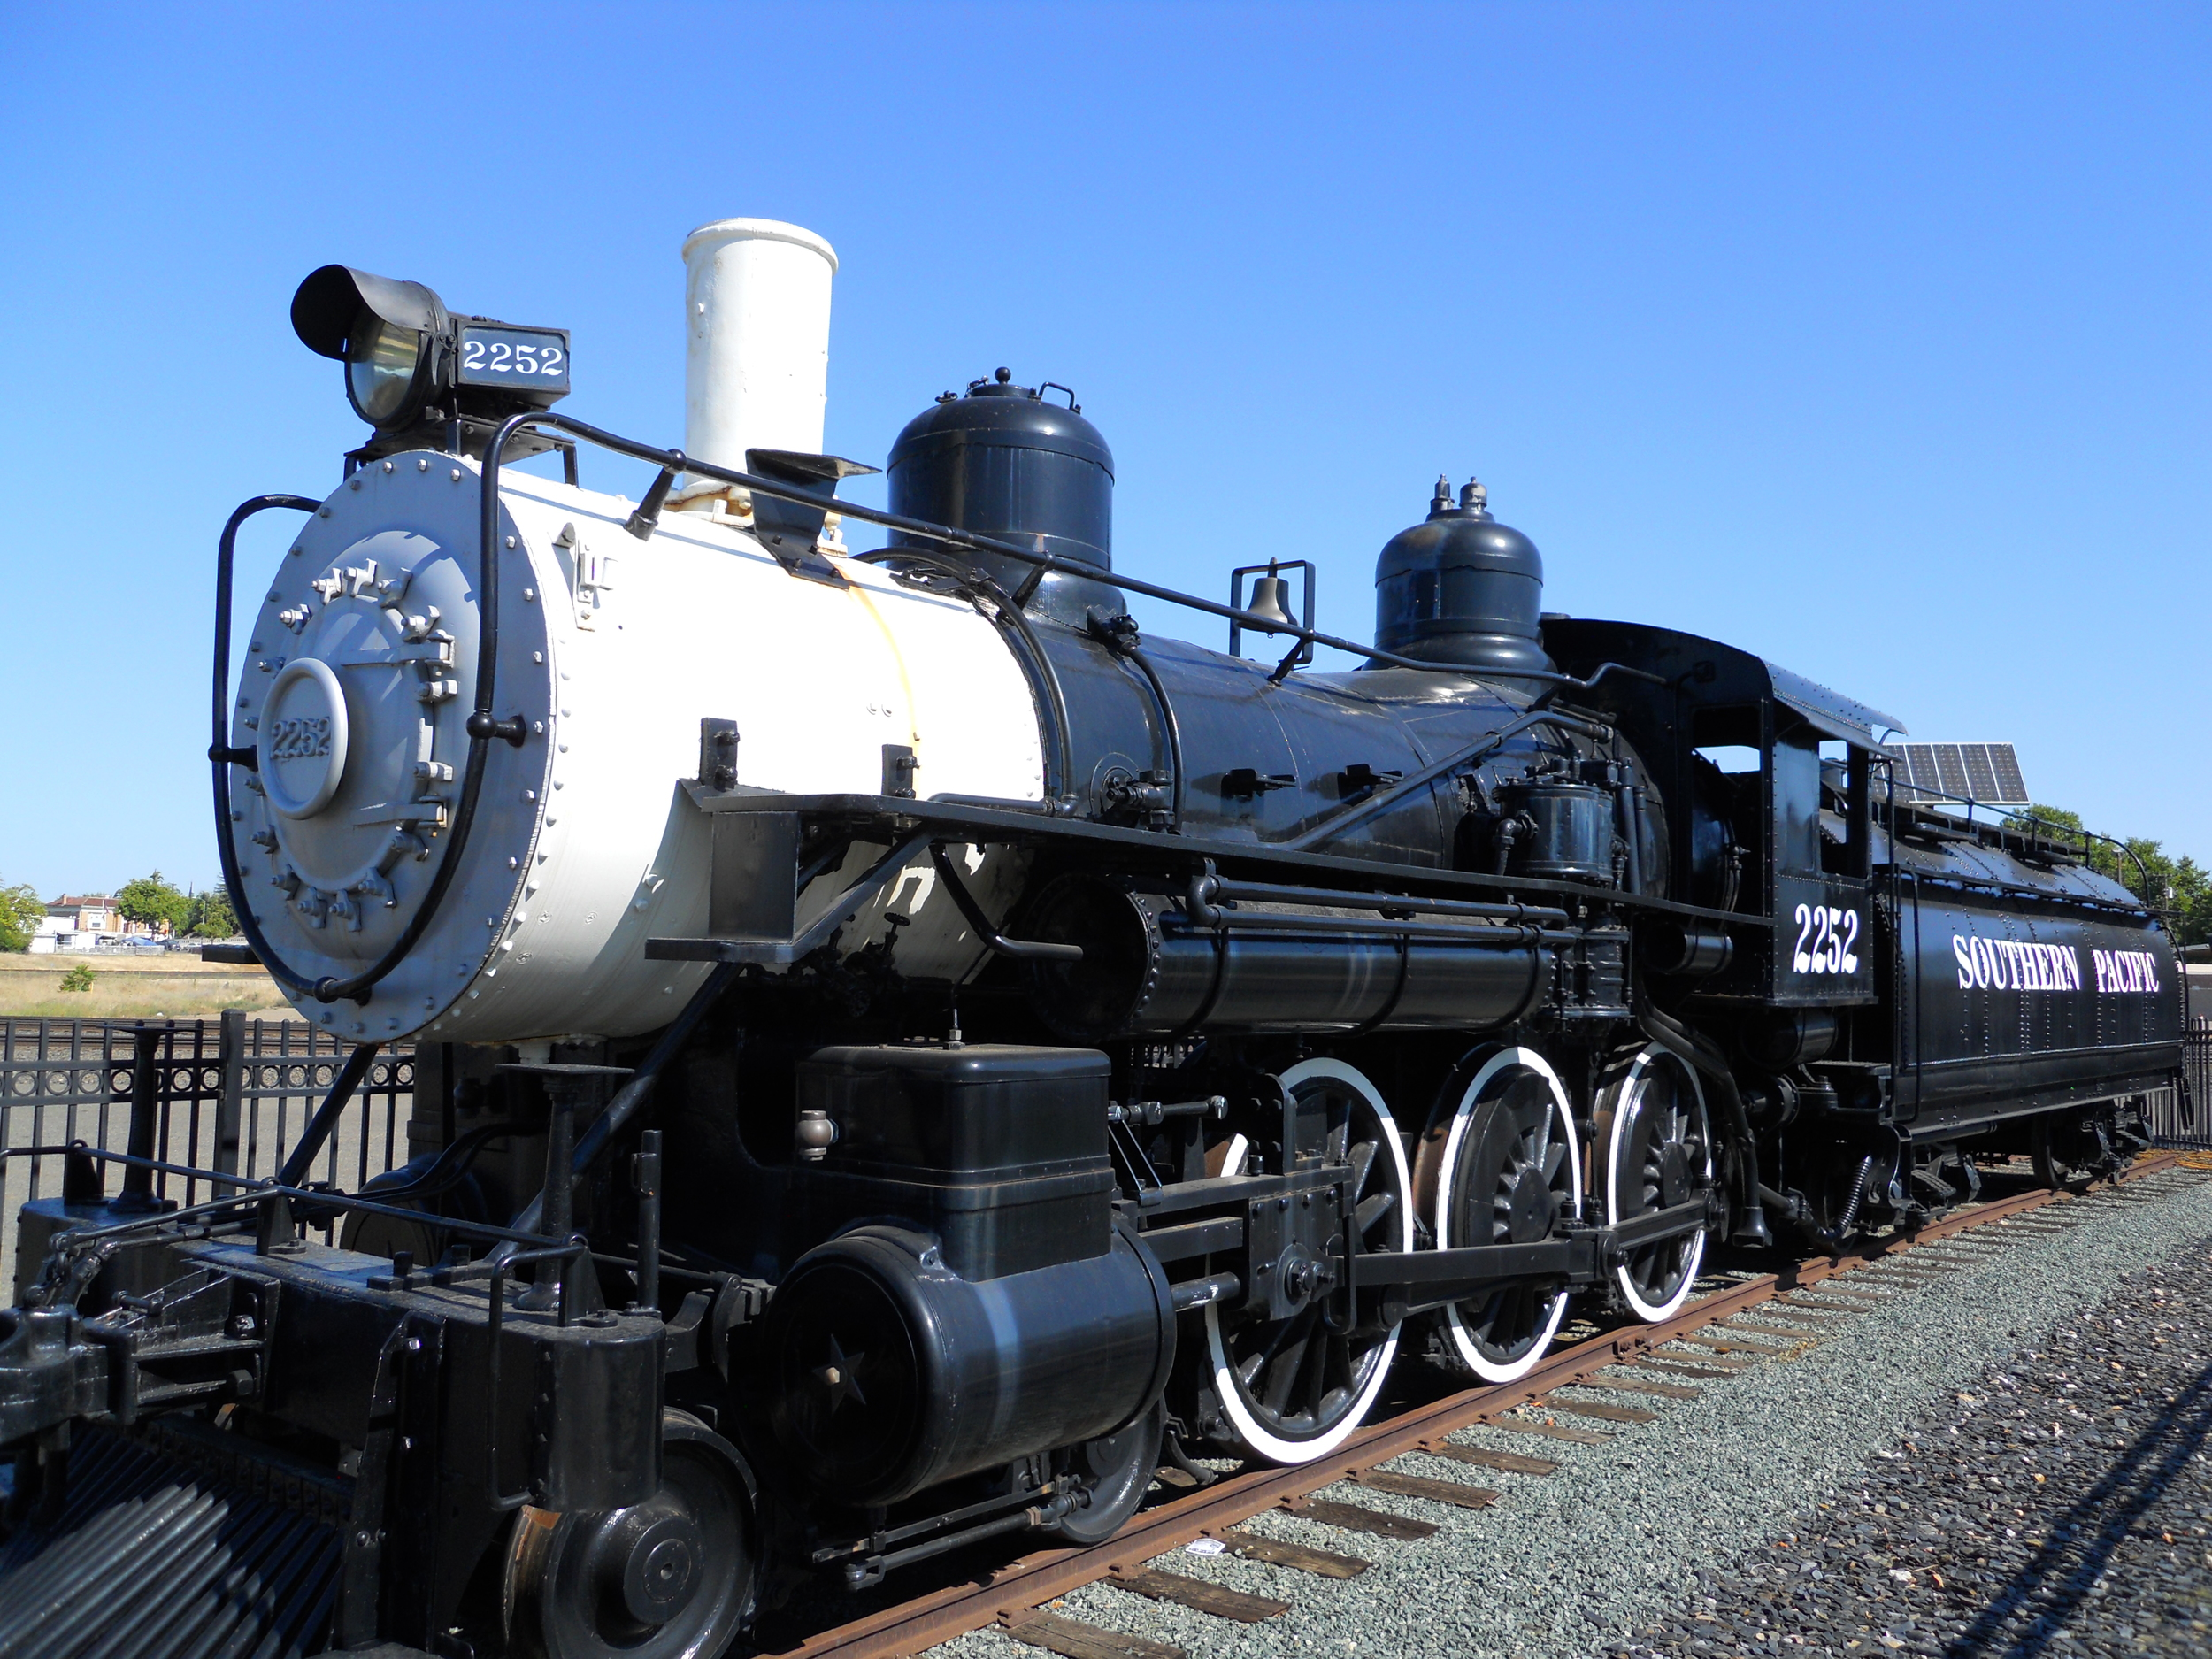 IN 2004, THE 70 TON STEAM ENGINE WAS MOVED FROM PLACER COUNTY FAIRGROUNDS TO THE PERMANENT DISPLAY SITE ALONG ATLANTIC STREET.